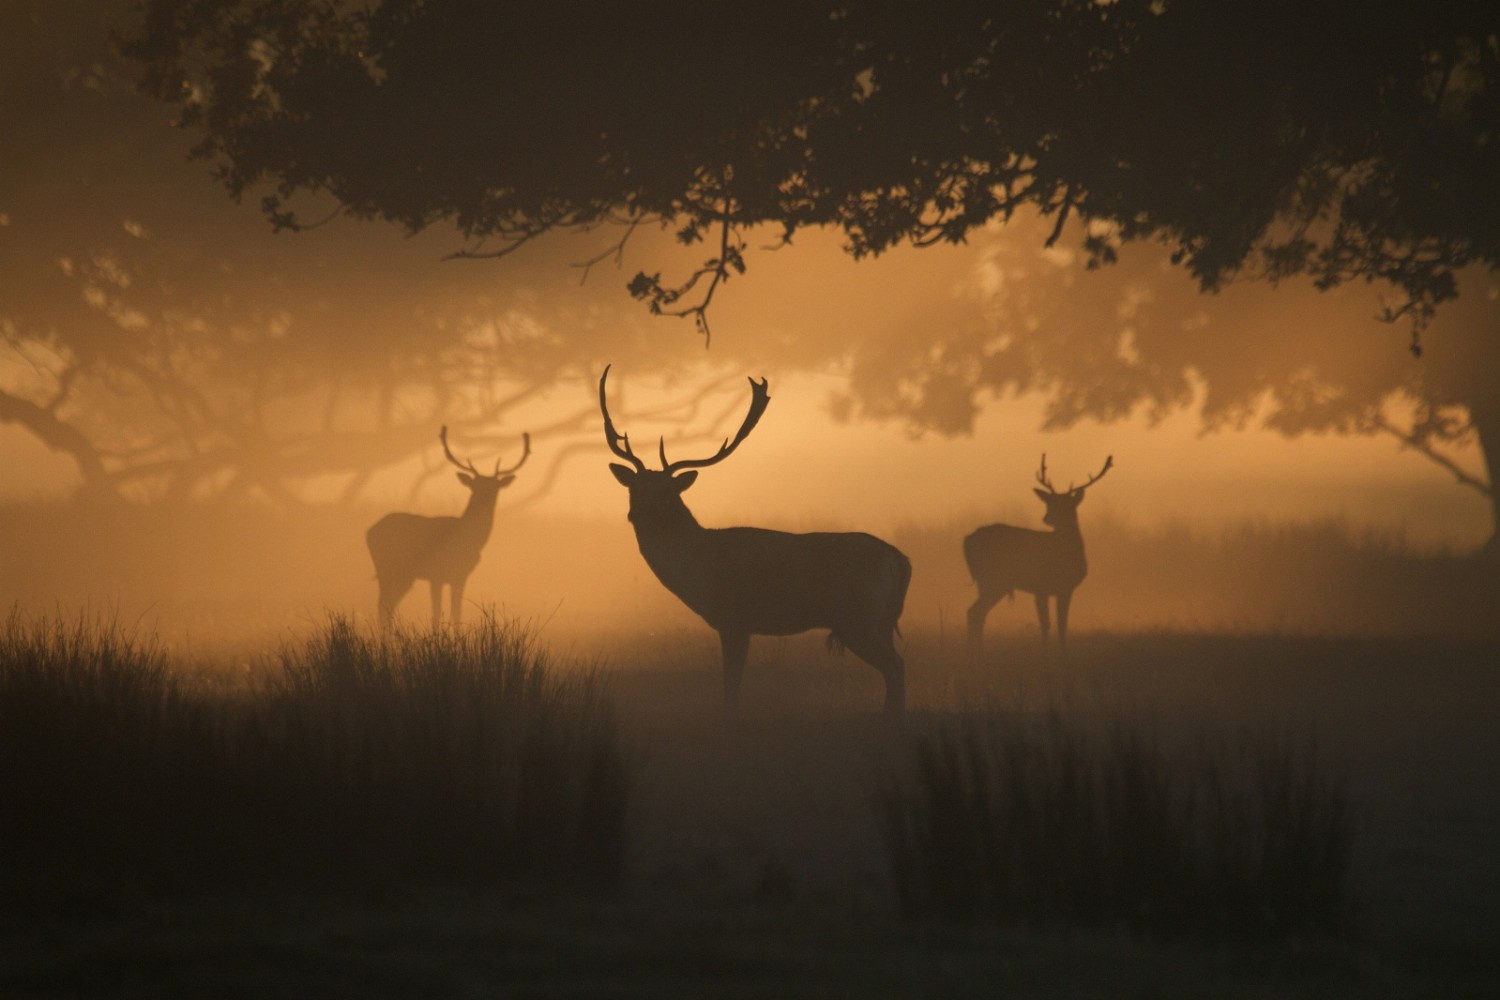 Photographing the Extremes: 30 of the Best Silhouettes on 500px